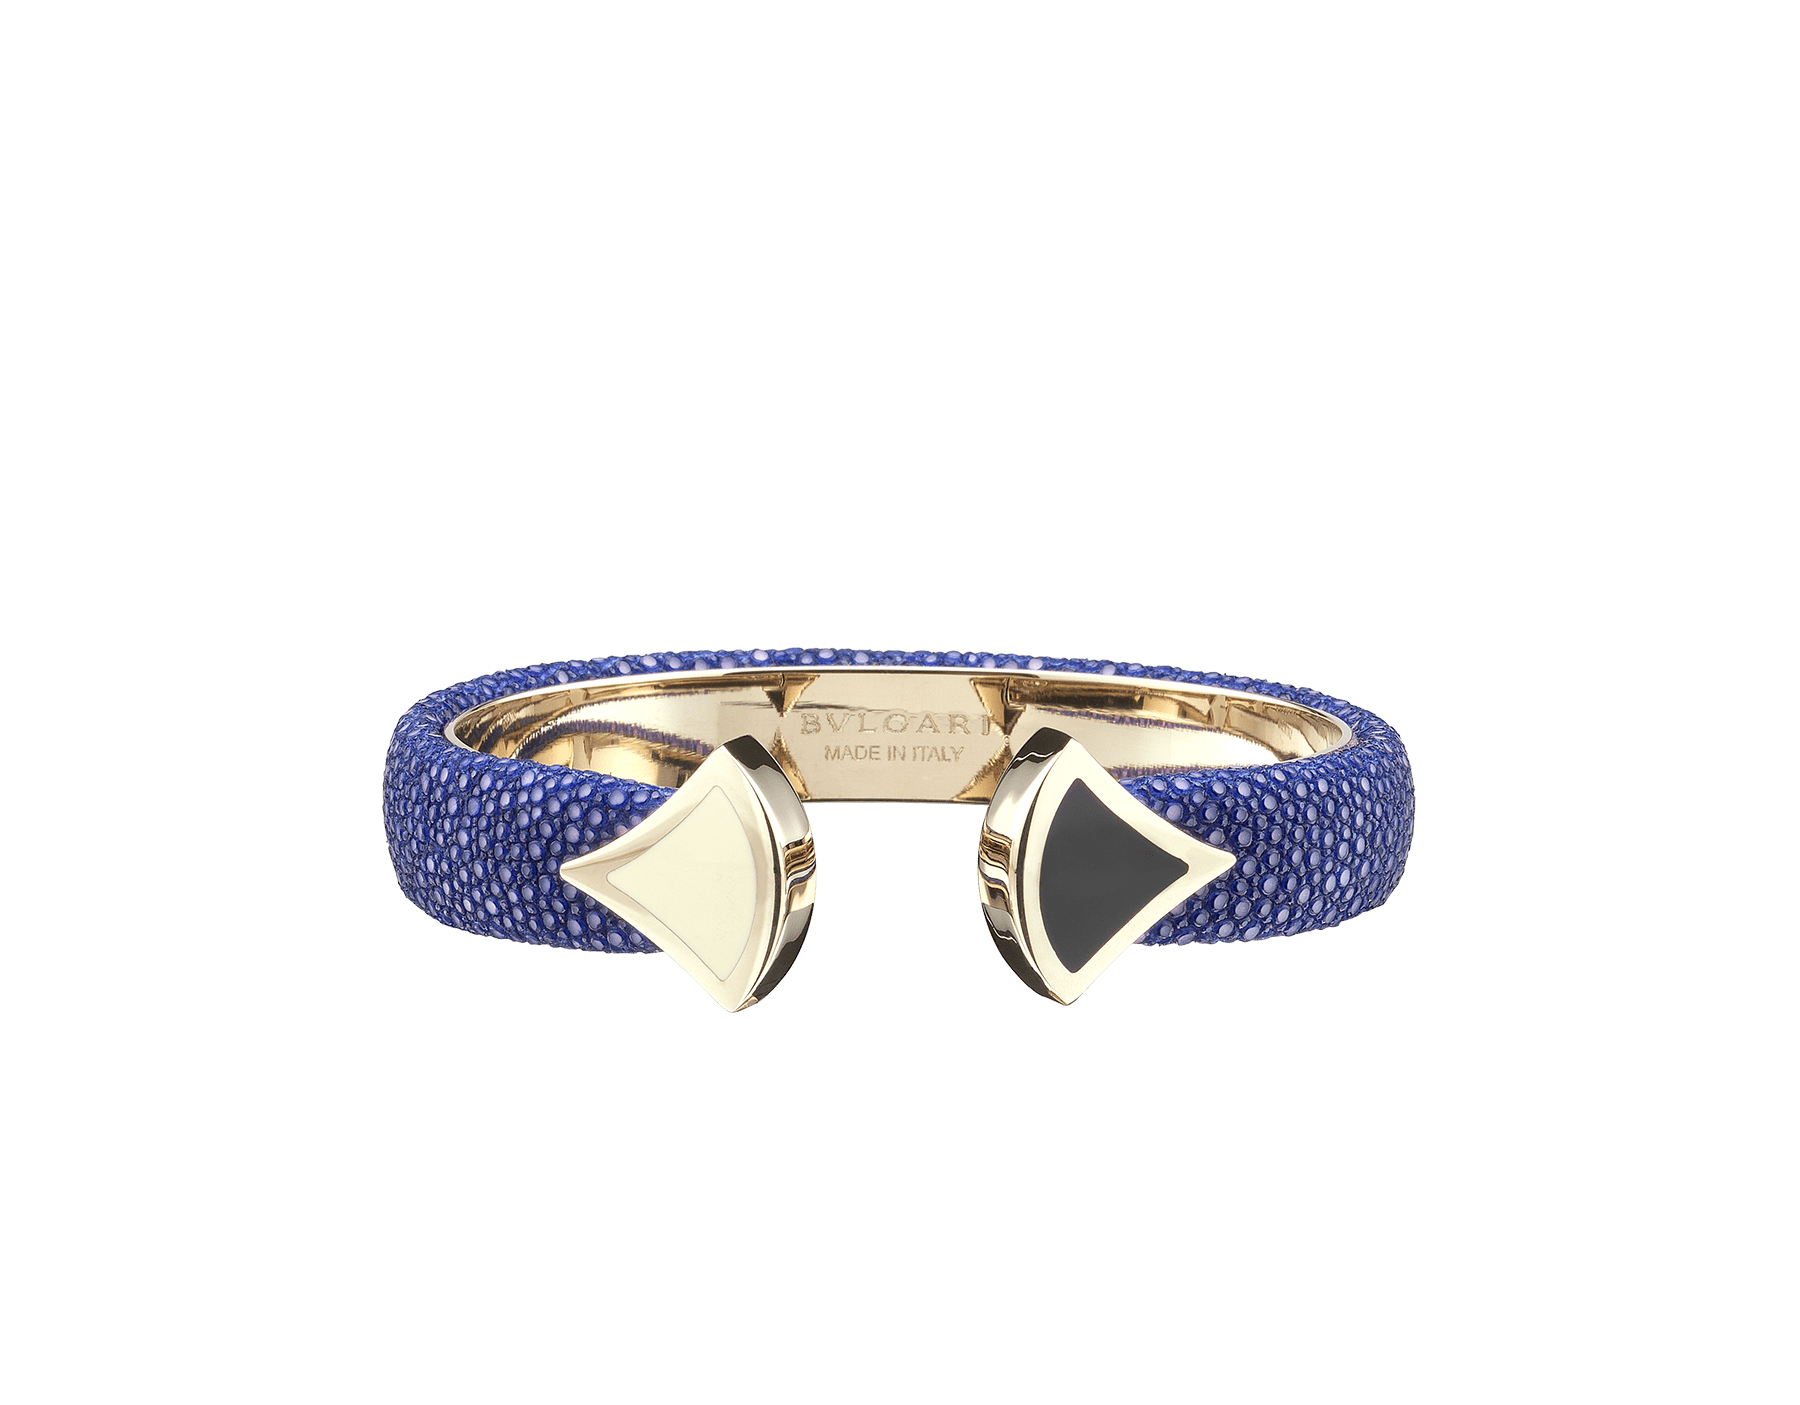 Bracelet in royal sapphire galuchat skin, with iconic contraire brass light gold plated DIVAS' DREAM motif in black and white enamel. DIVA-CONTRAIR-M image 1